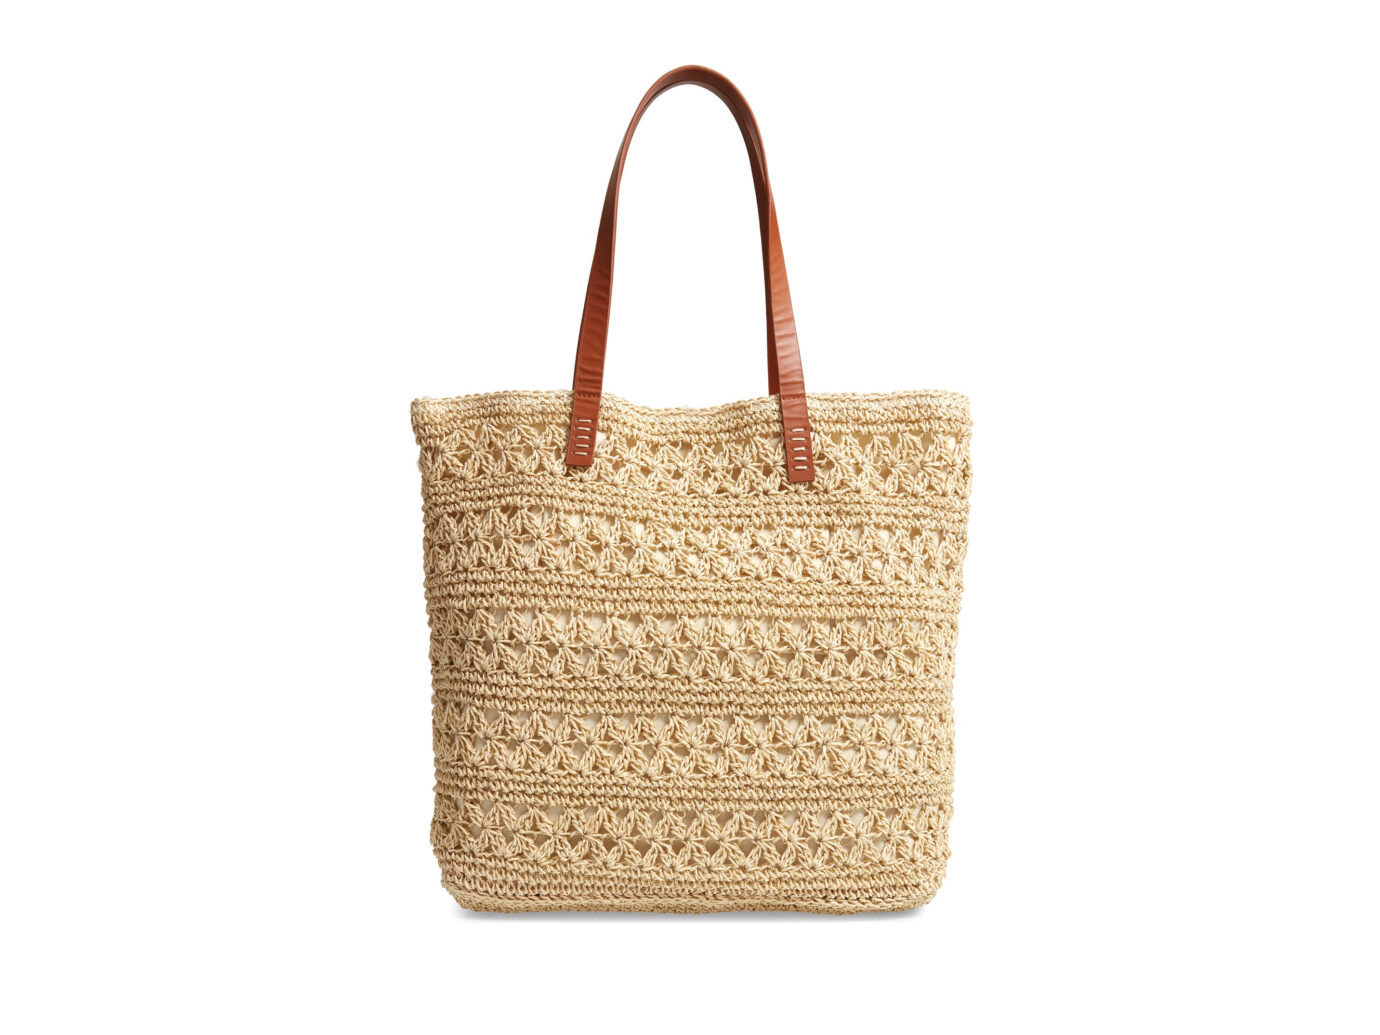 Nordstrom Packable Metallic Thread Woven Raffia Tote